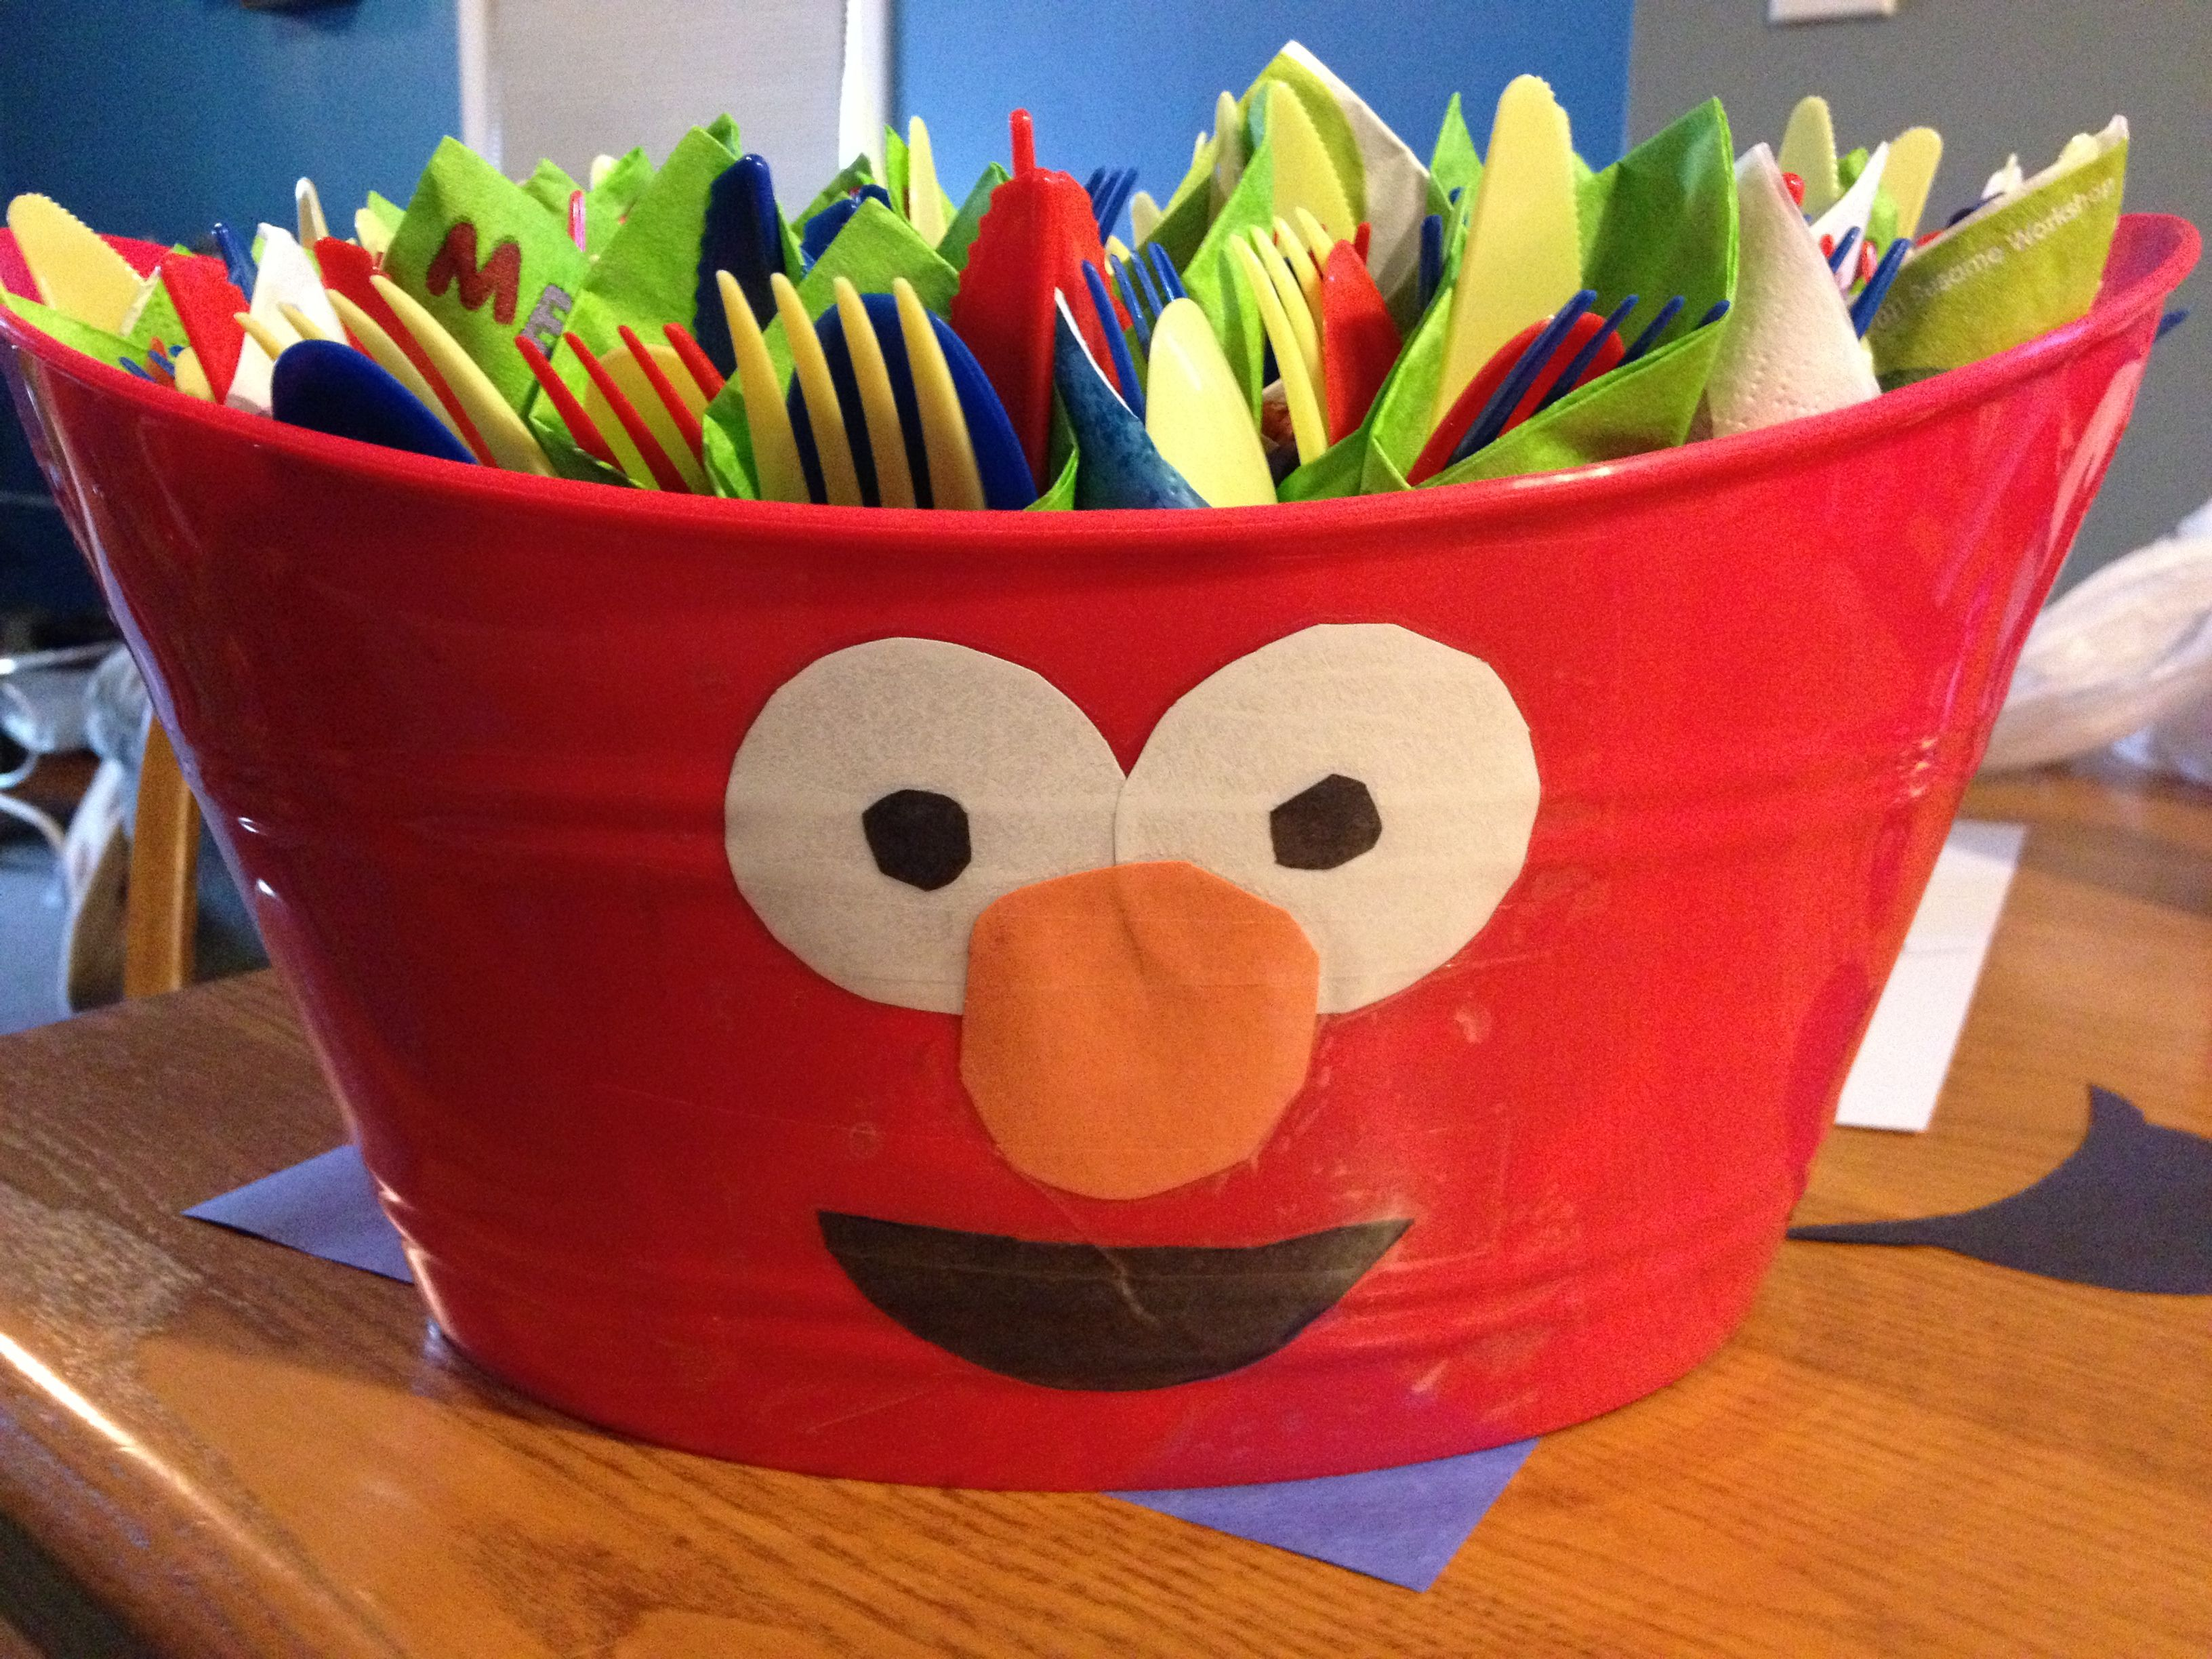 DIY Elmo bowls from the dollar tree for Sesame Street birthday ...